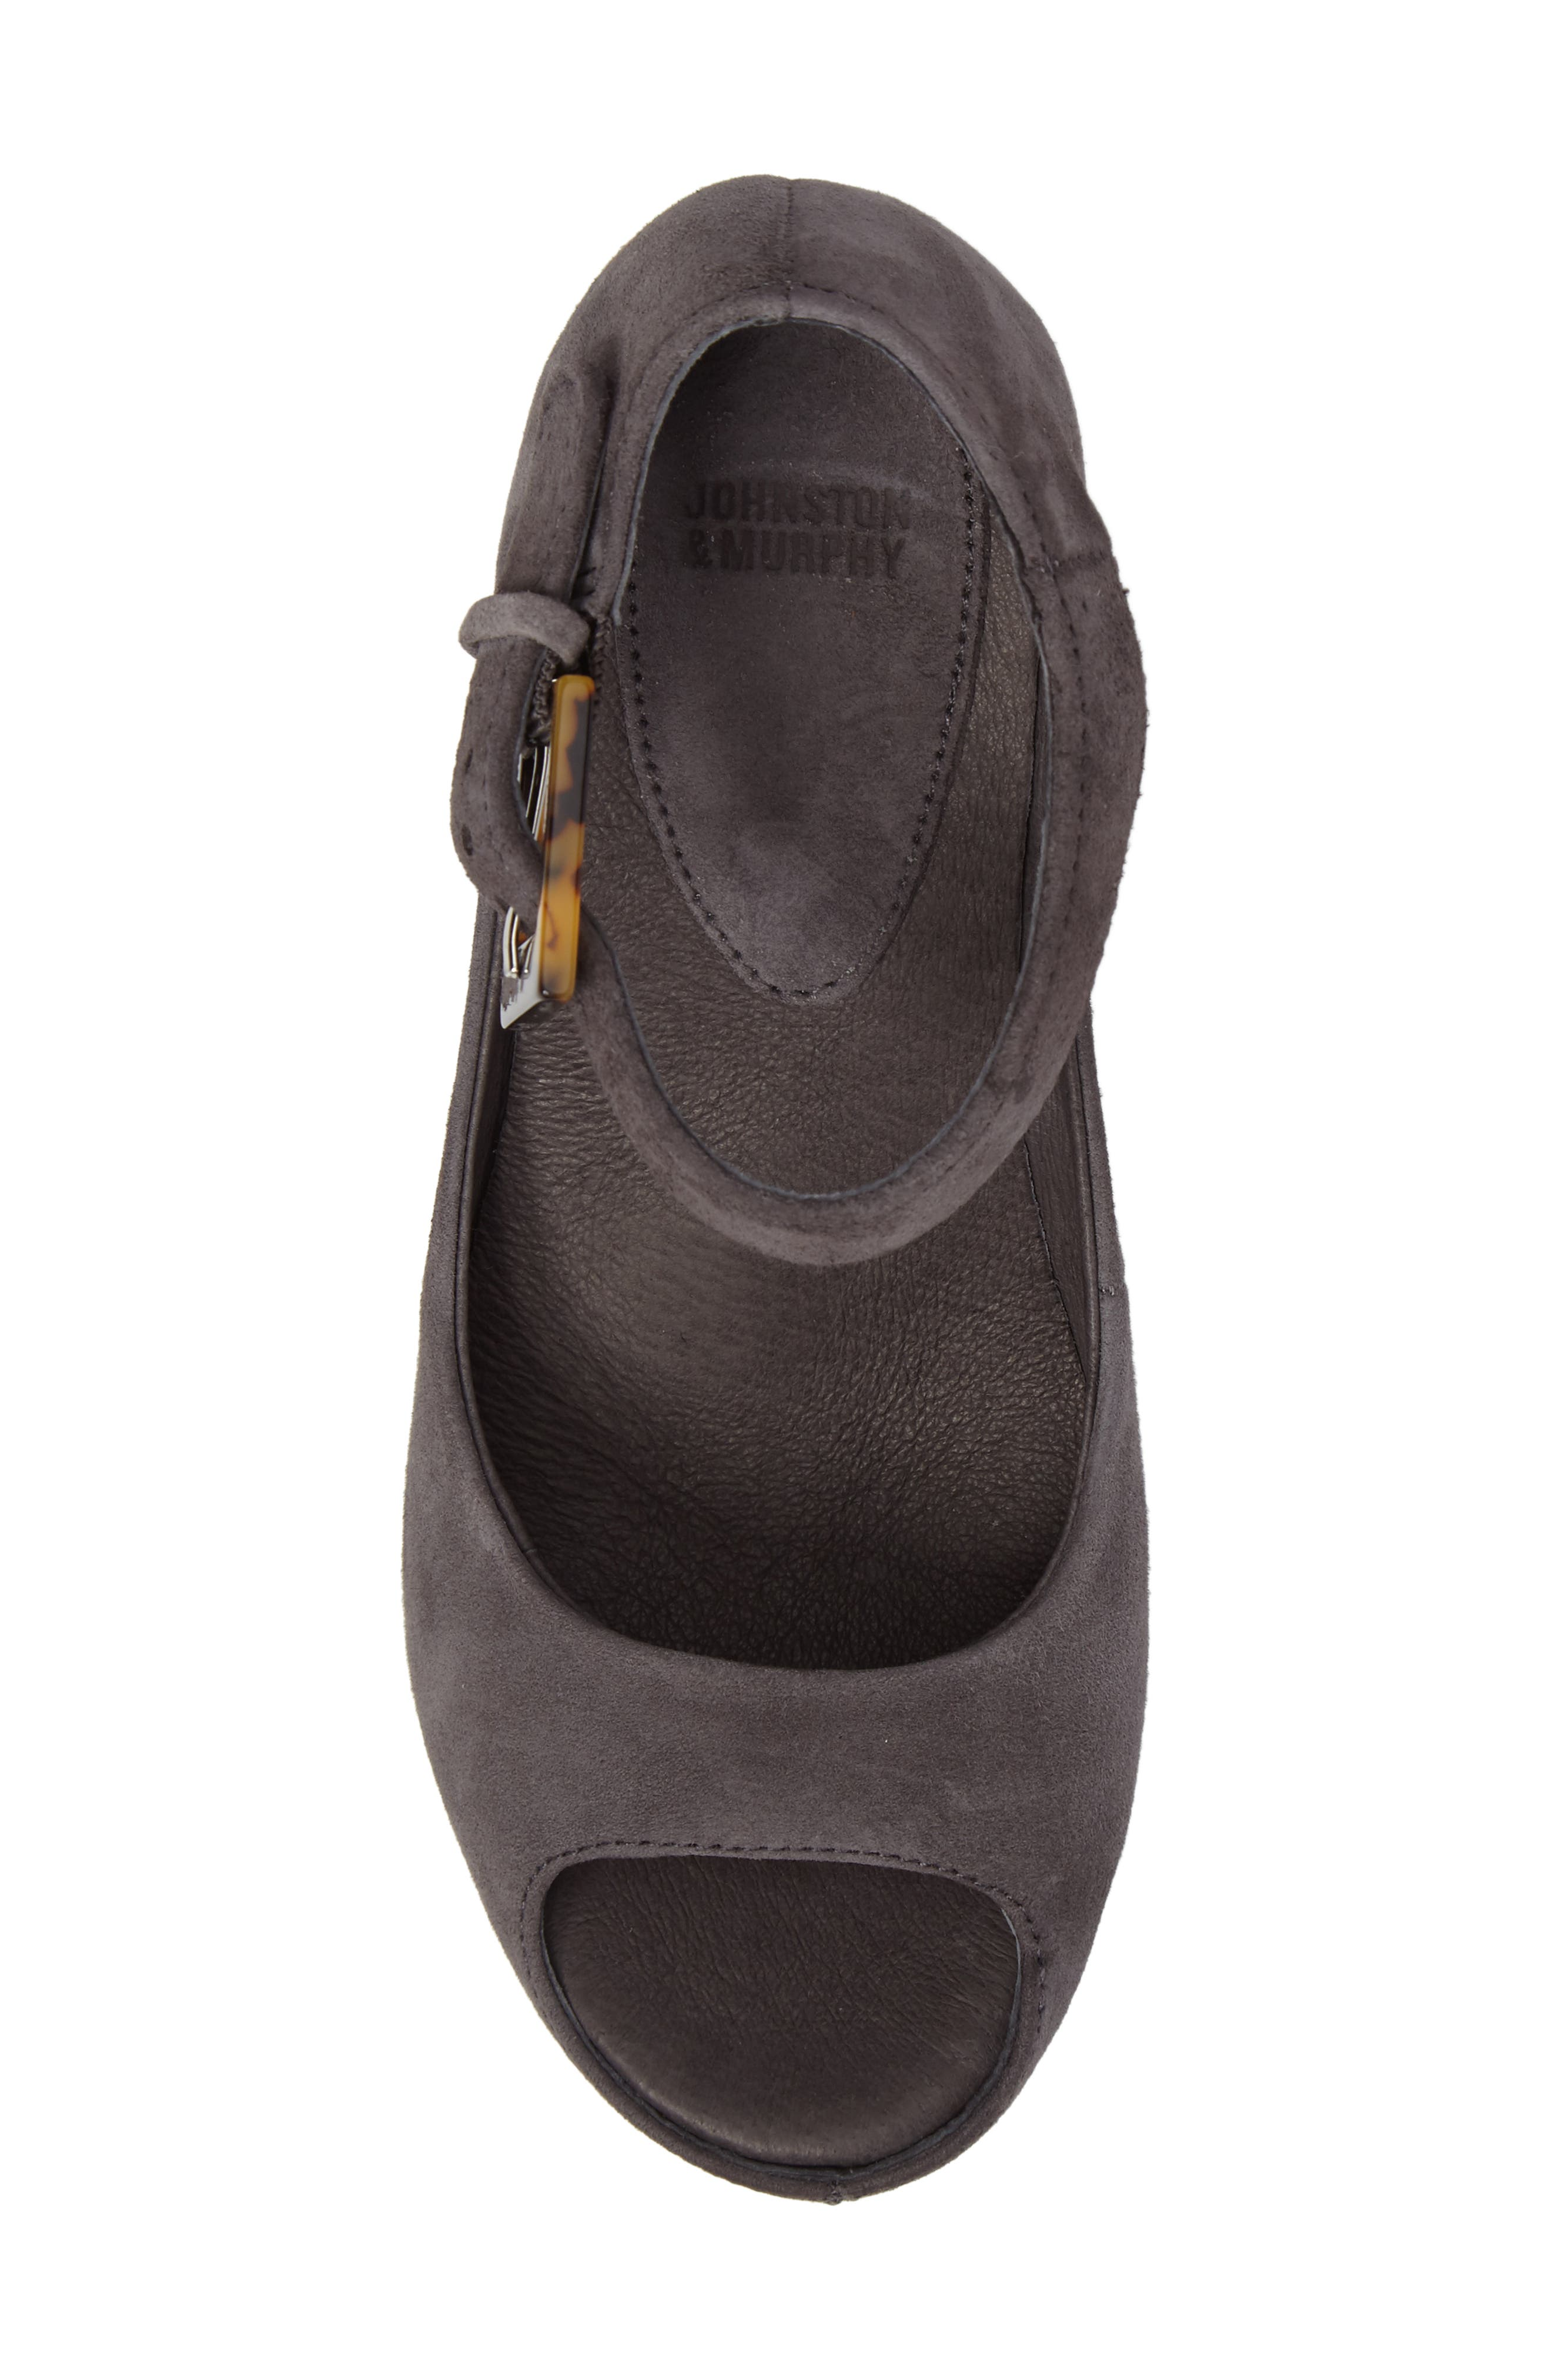 'Tricia' Ankle Strap Sandal,                             Alternate thumbnail 4, color,                             Gray Suede